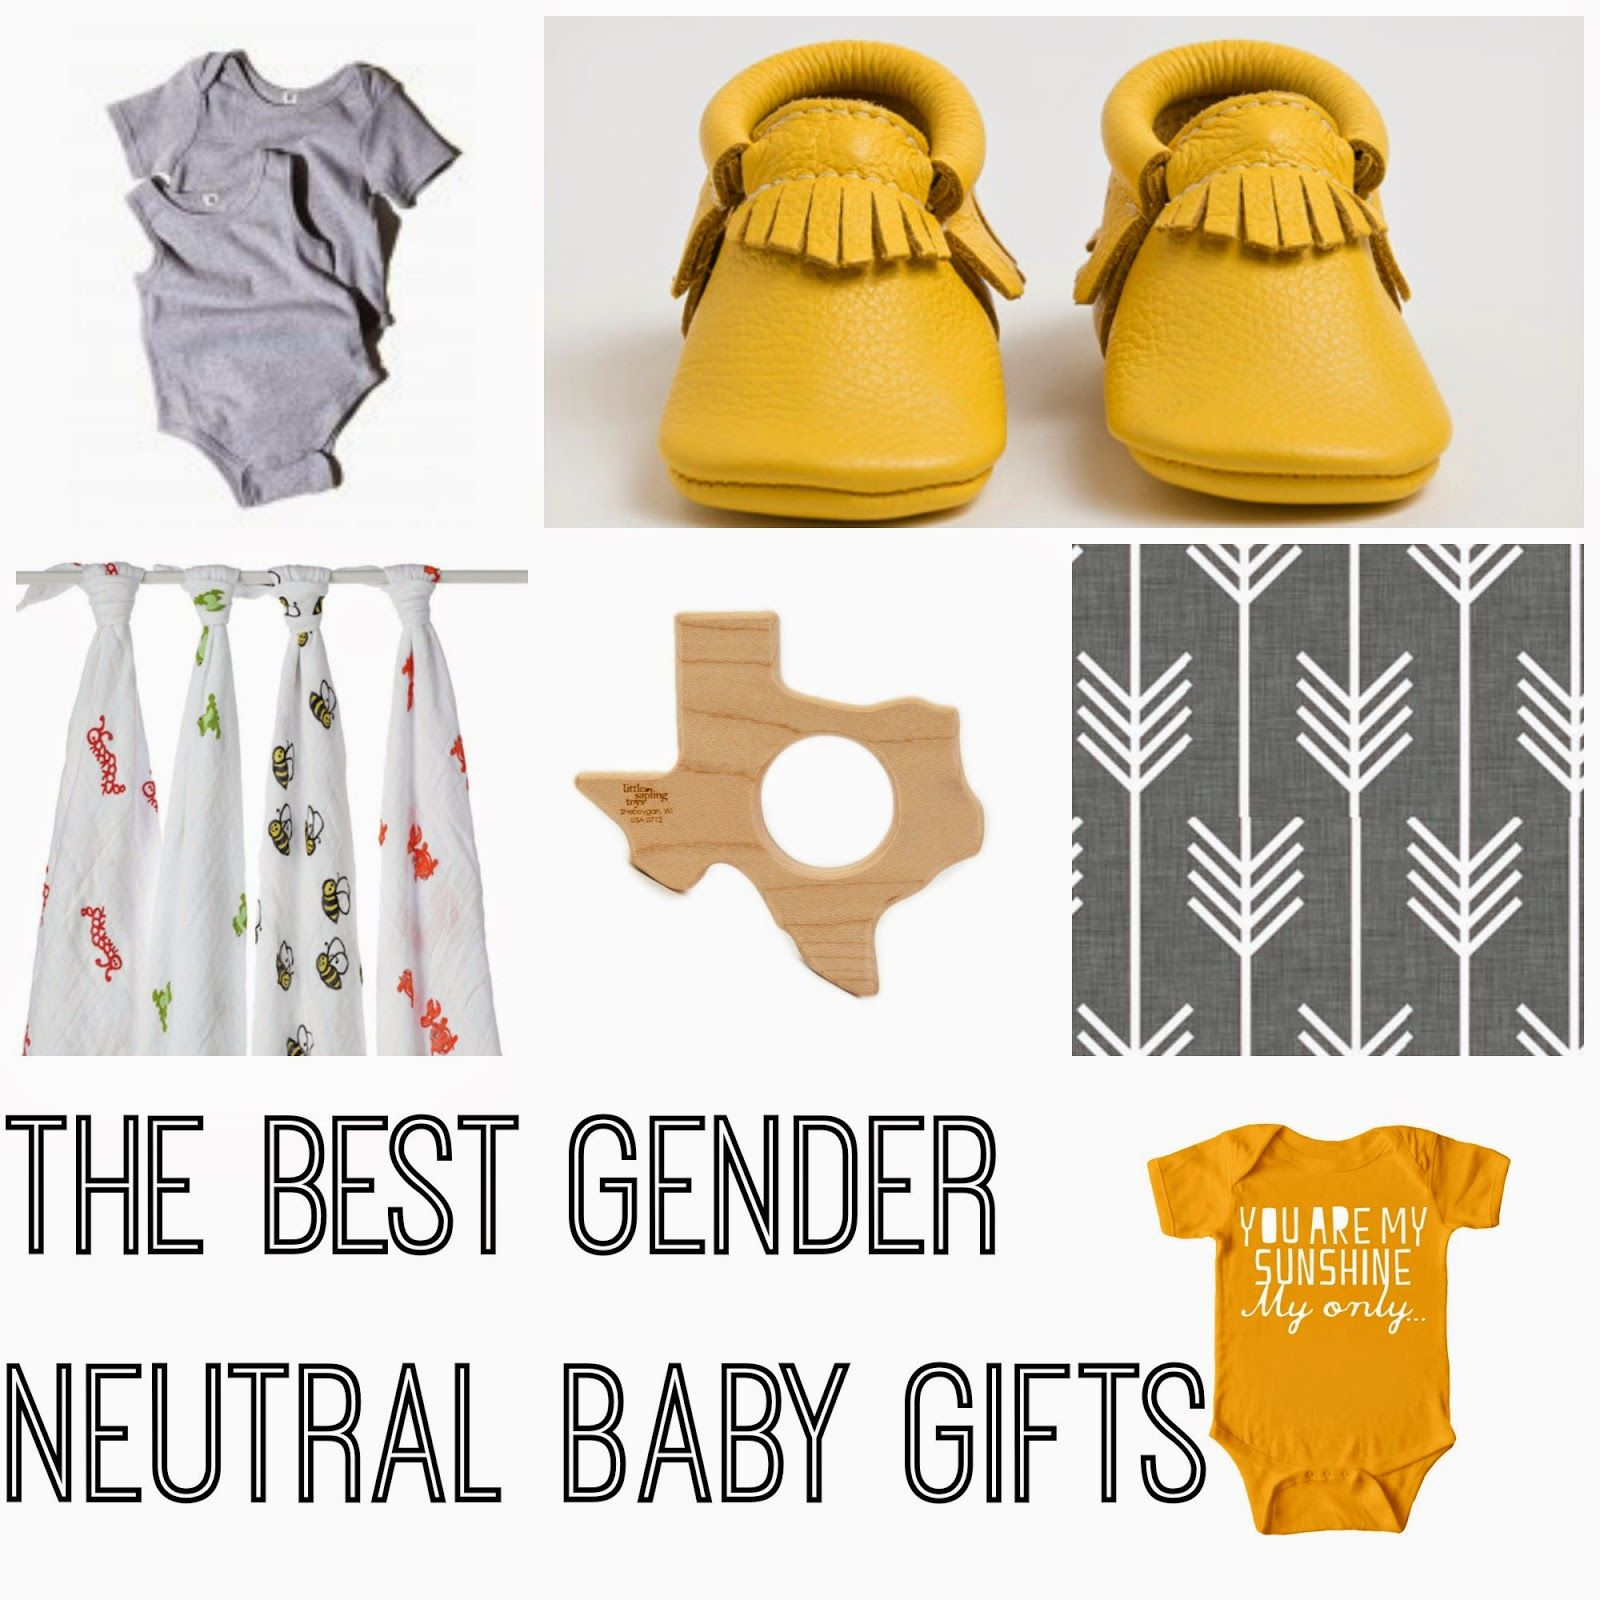 The Best Gender Neutral Baby Gifts Giveaway The Chirping Moms Neutral Baby Gifts Gender Neutral Baby Shower Gifts Gender Neutral Baby Gifts